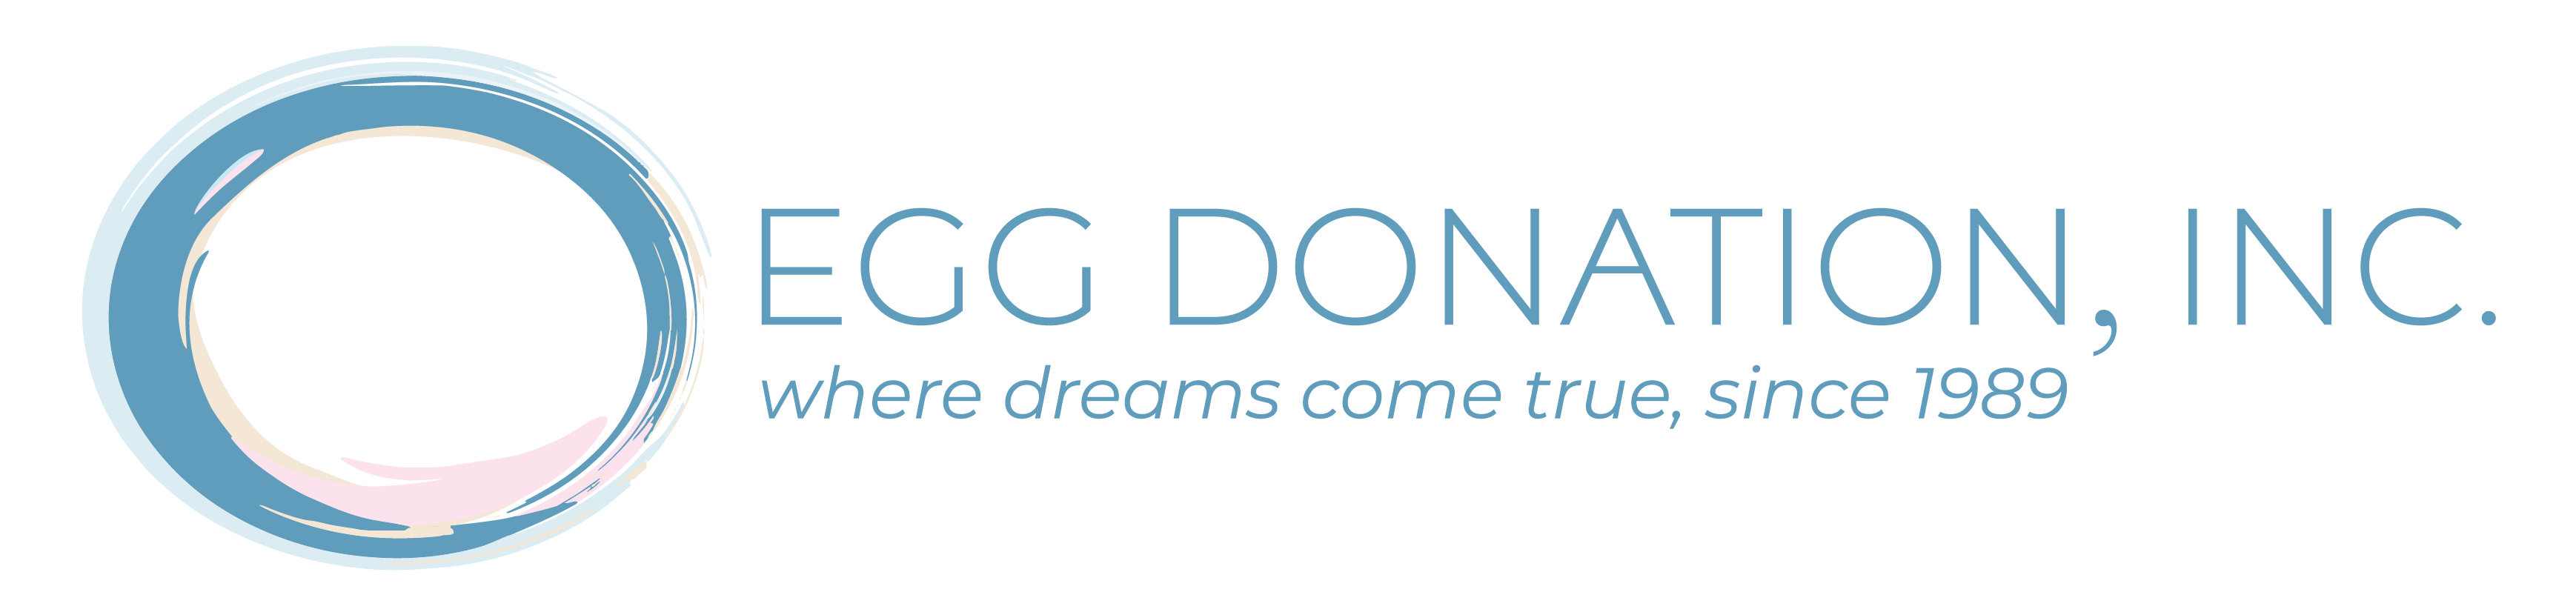 Egg Donation, Inc. | Leading Database of Elite Egg Donors | Los Angeles California Agency | Making your dreams of becoming a parent come true